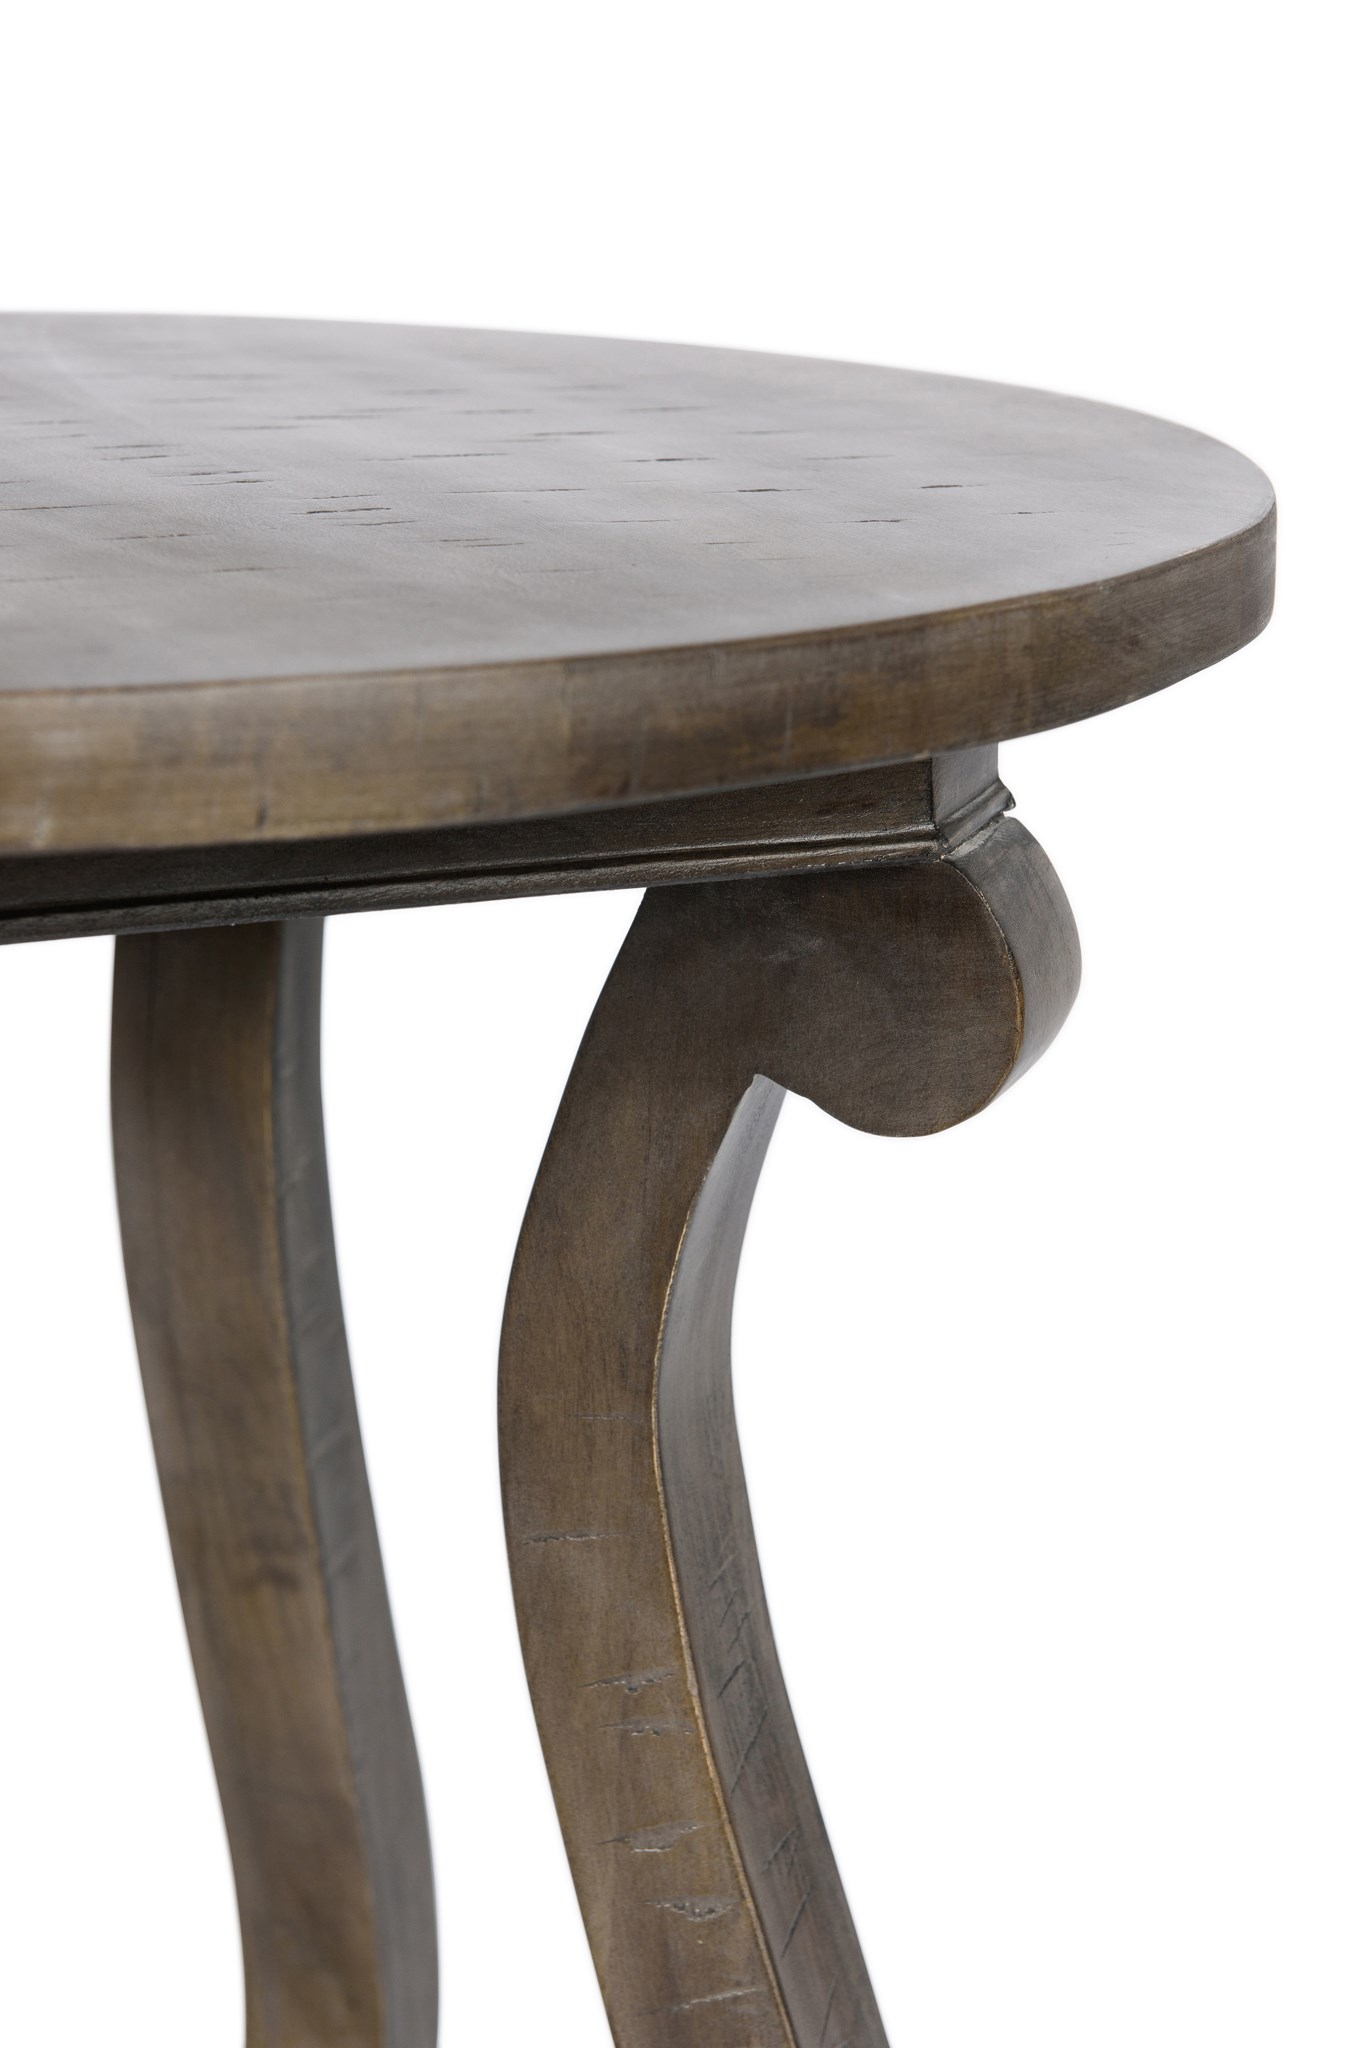 Austrian Rnd Side Table 24 DIAx28 SAL